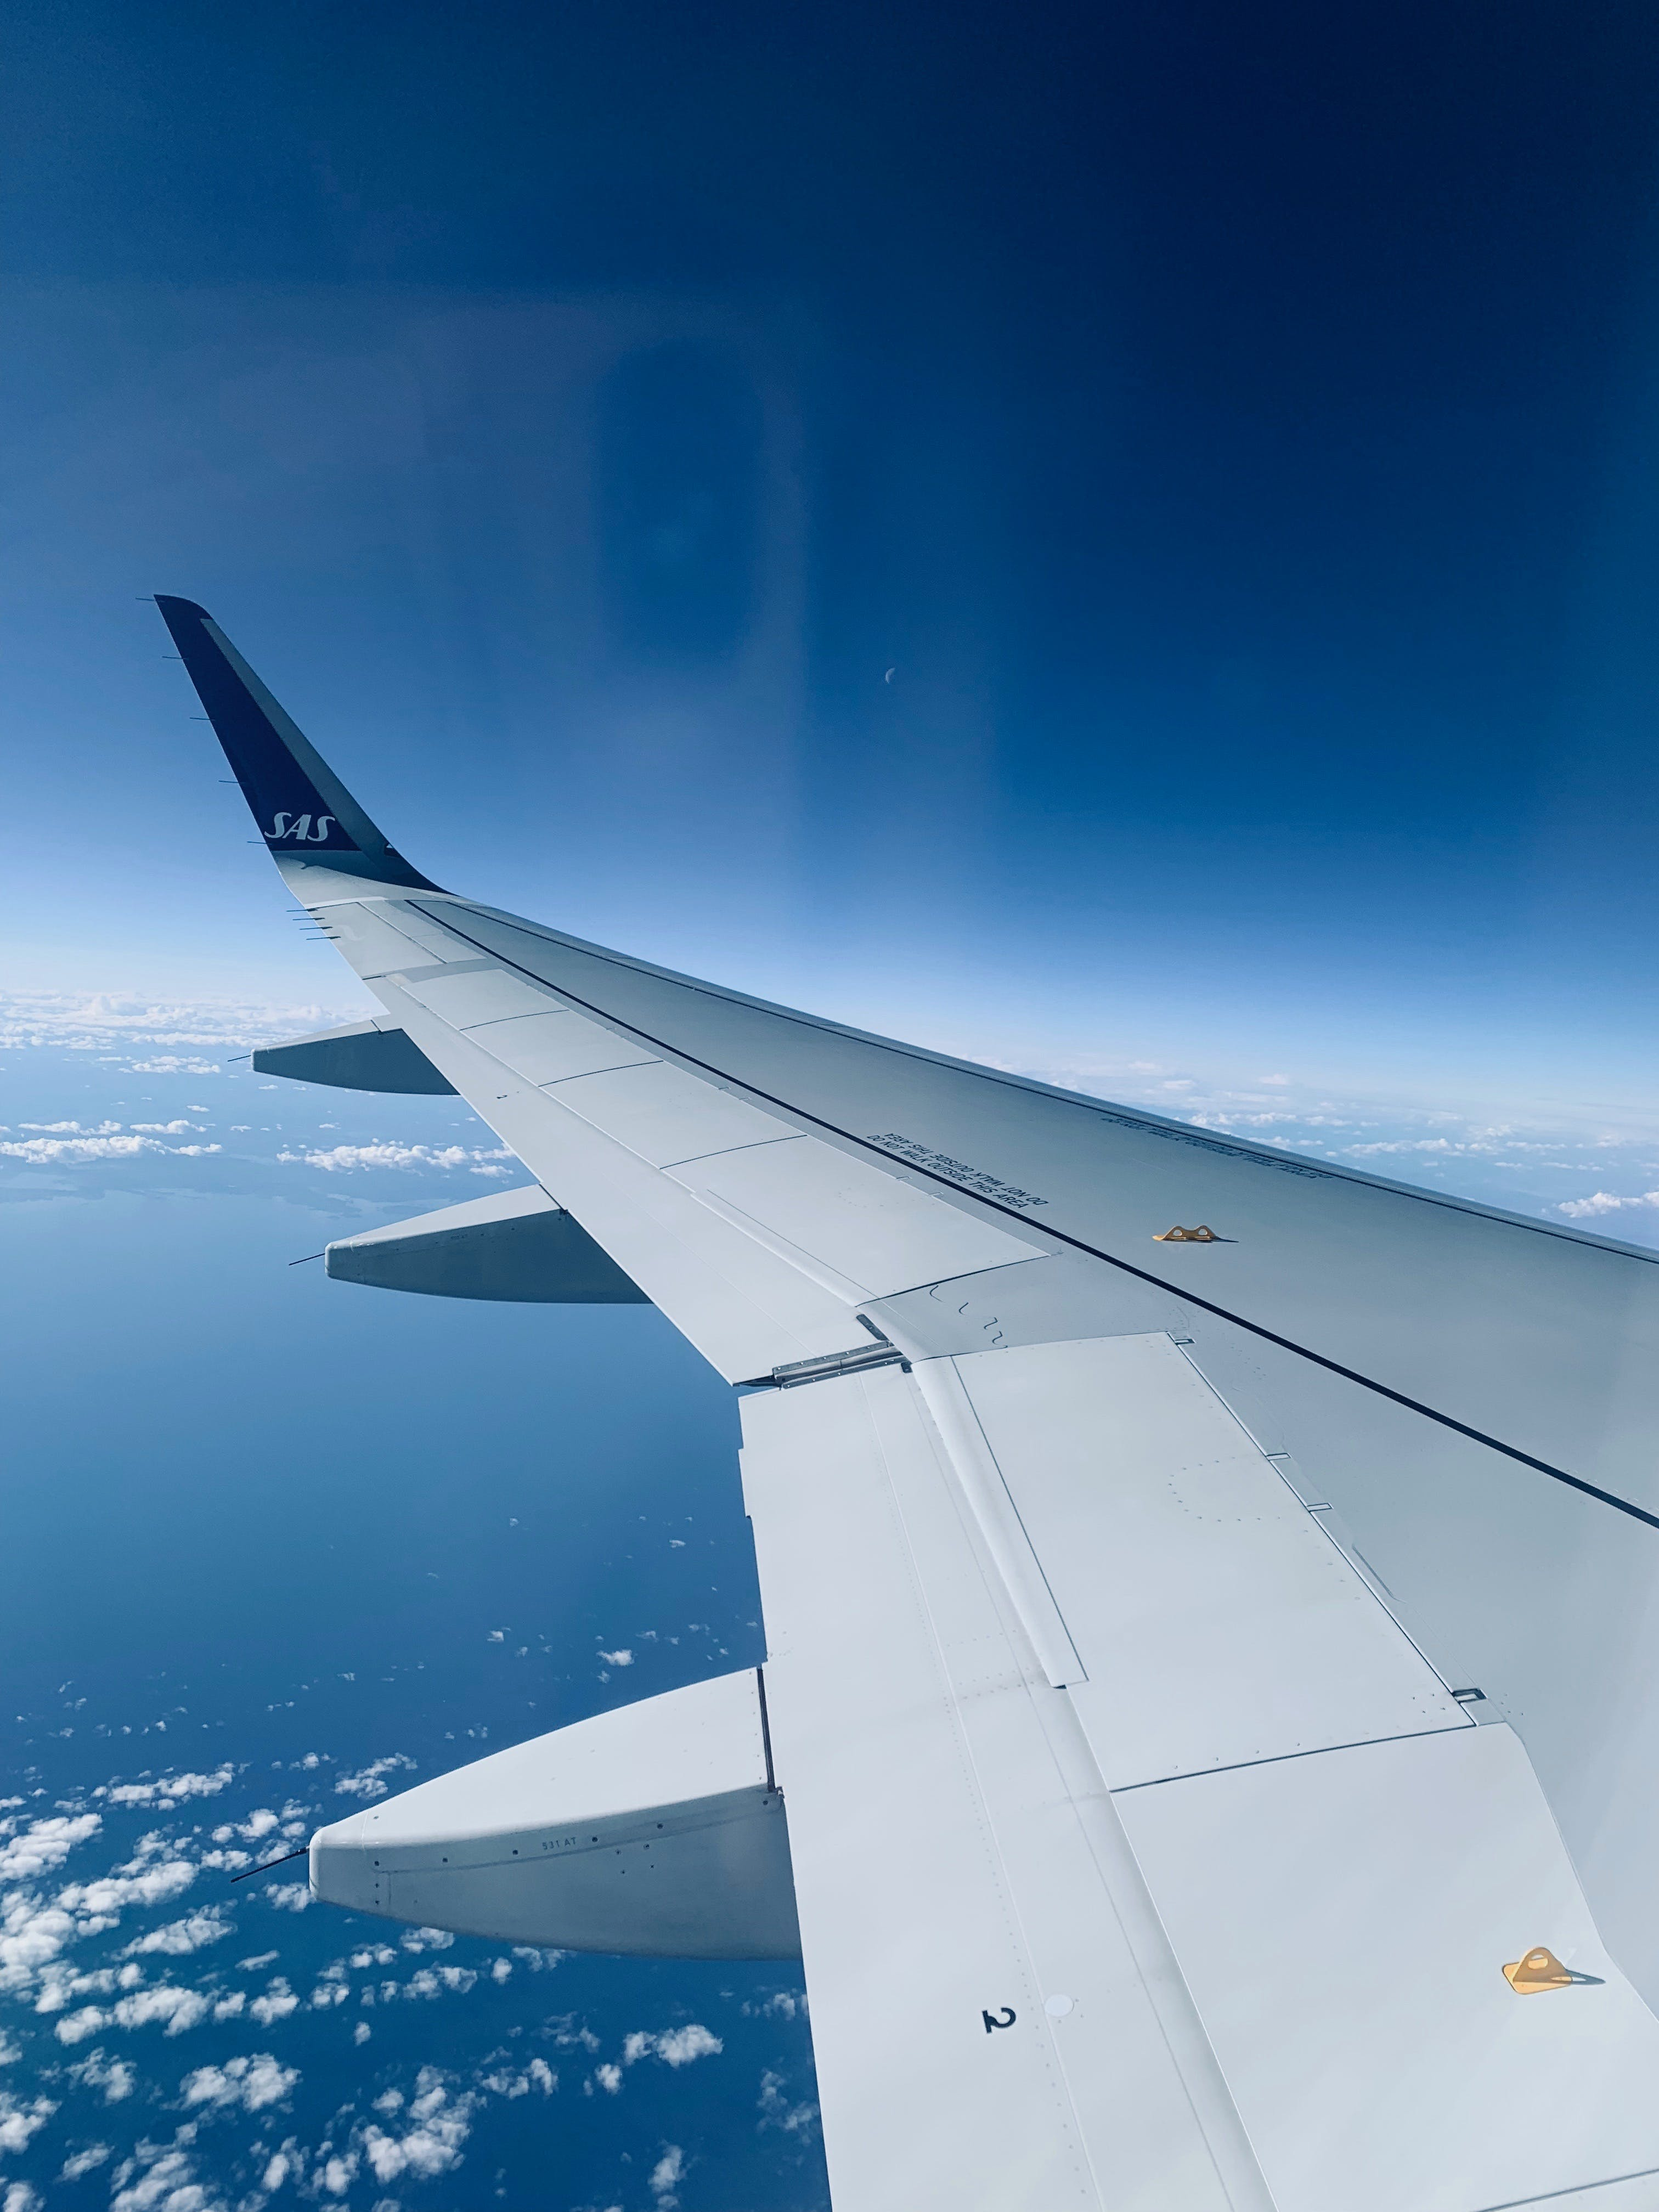 Free stock photo of flying